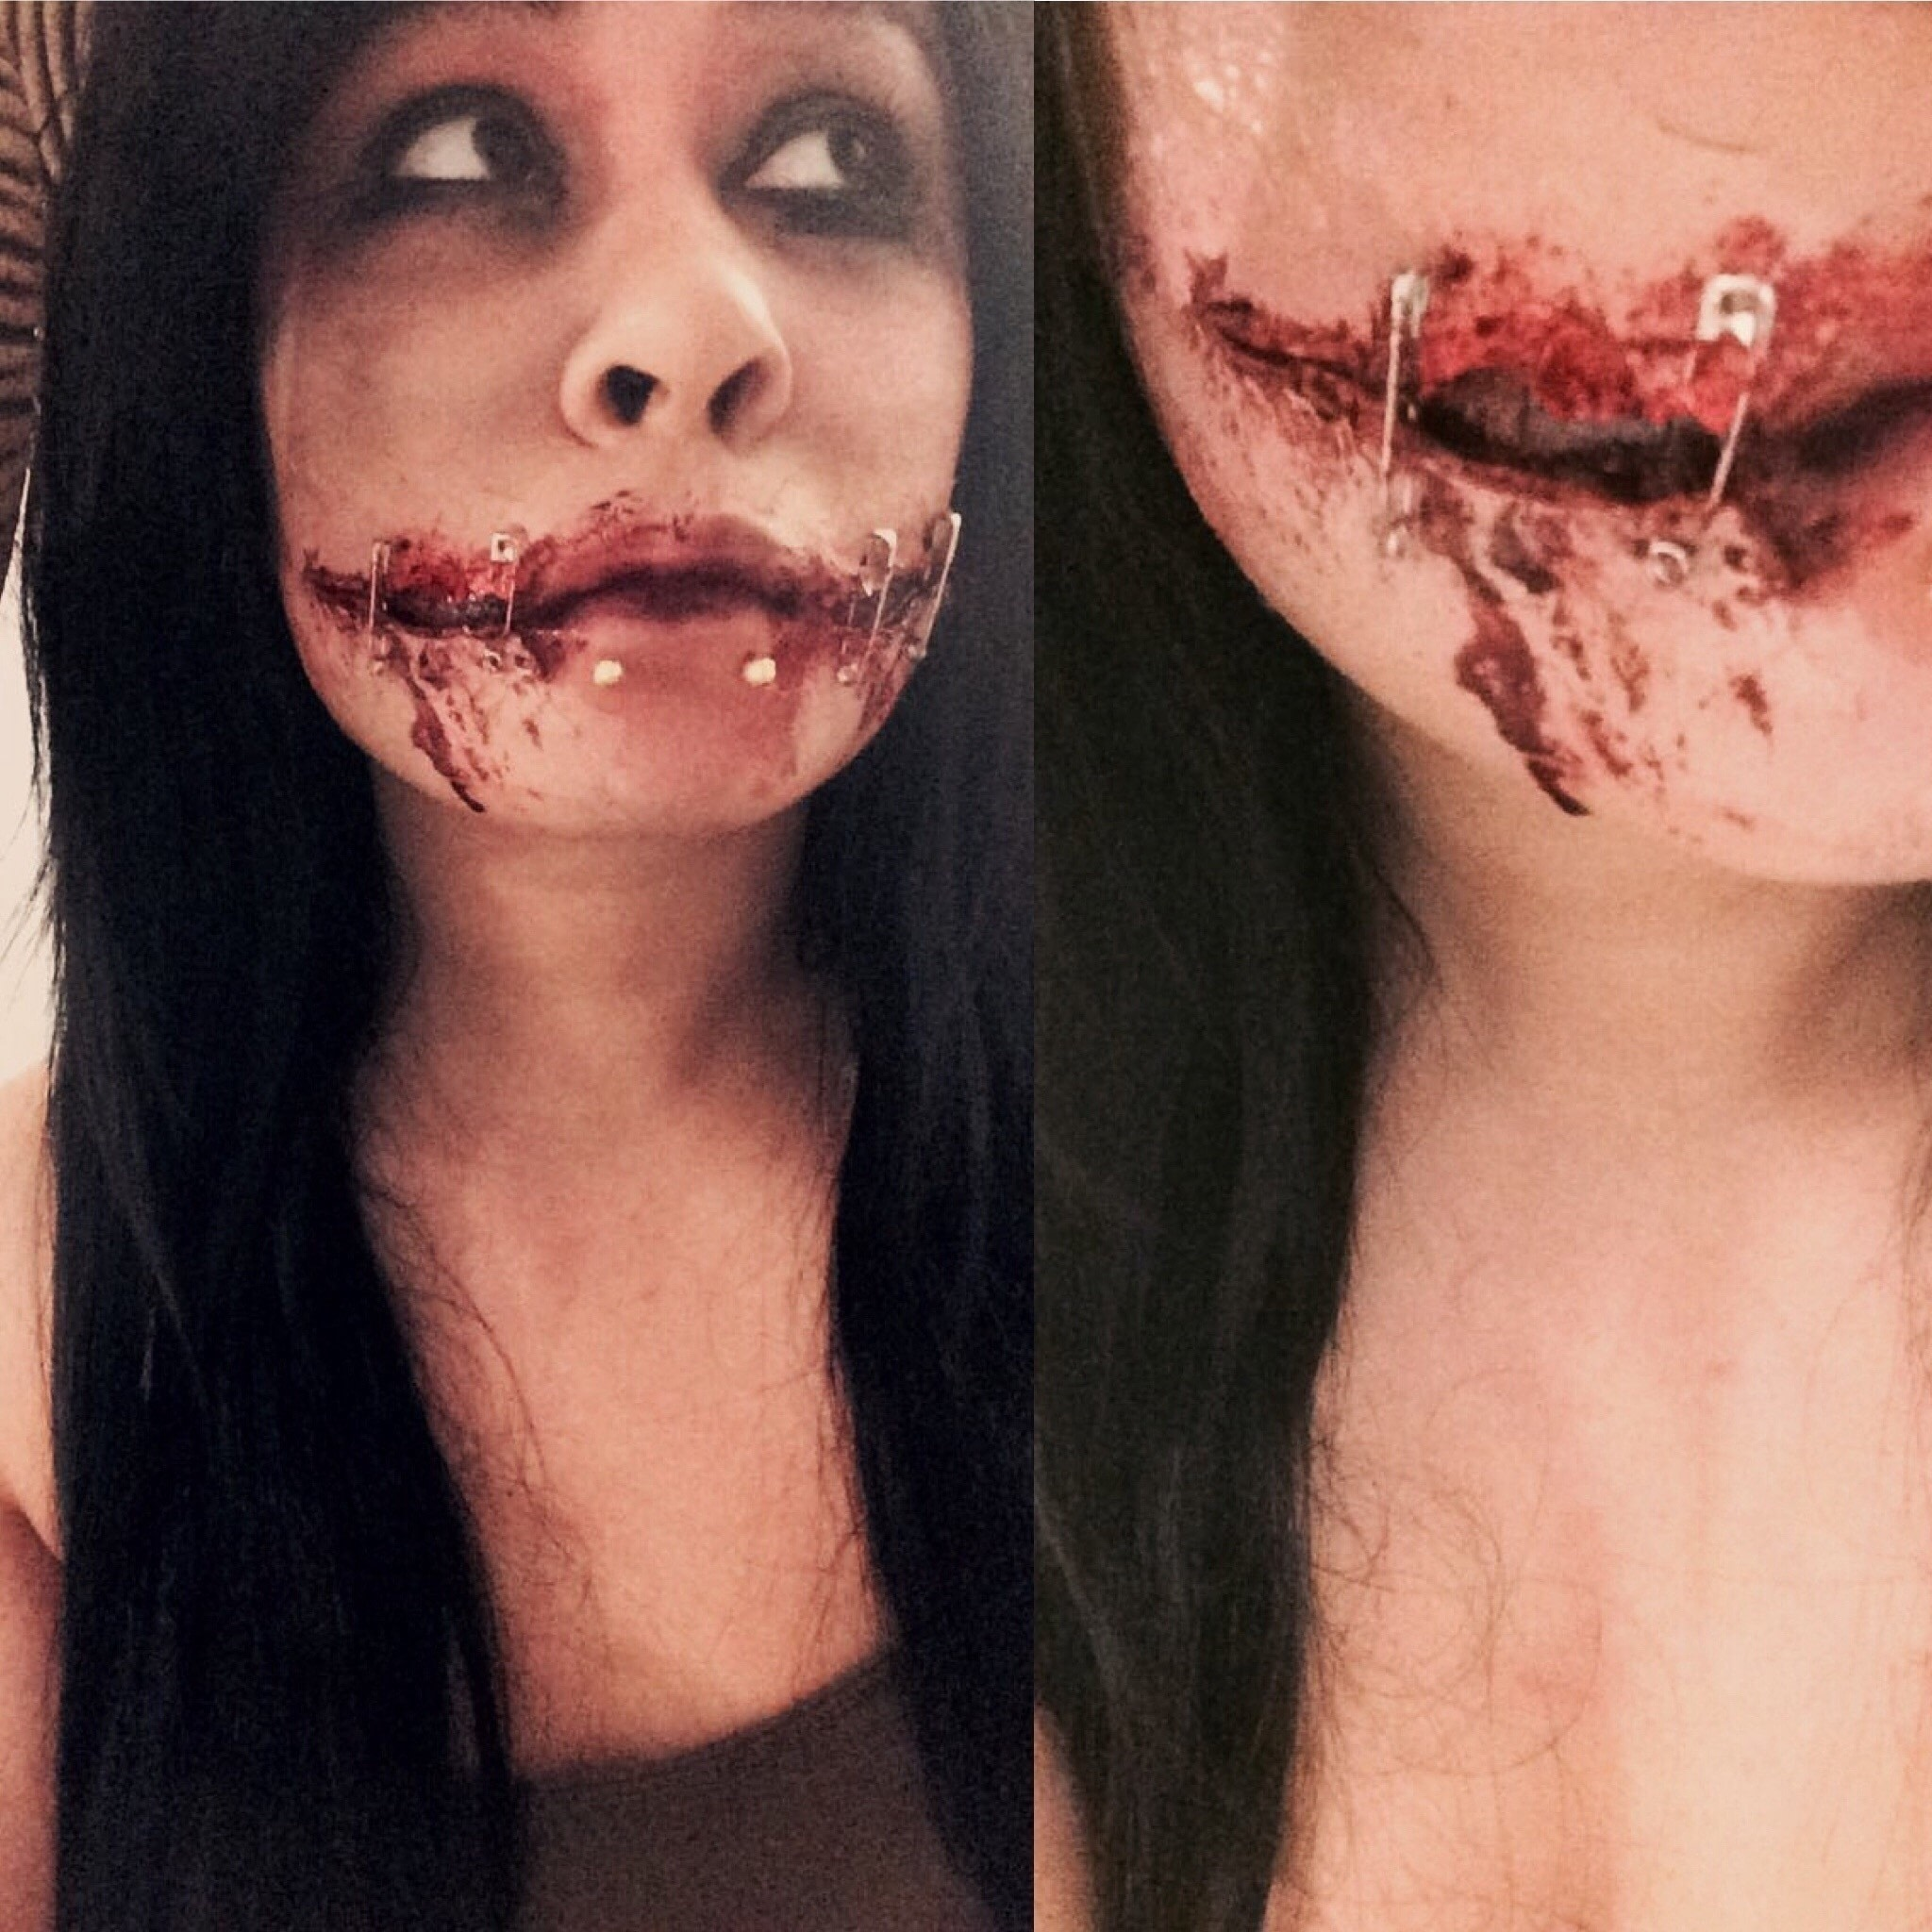 Cuts And Wounds Makeup